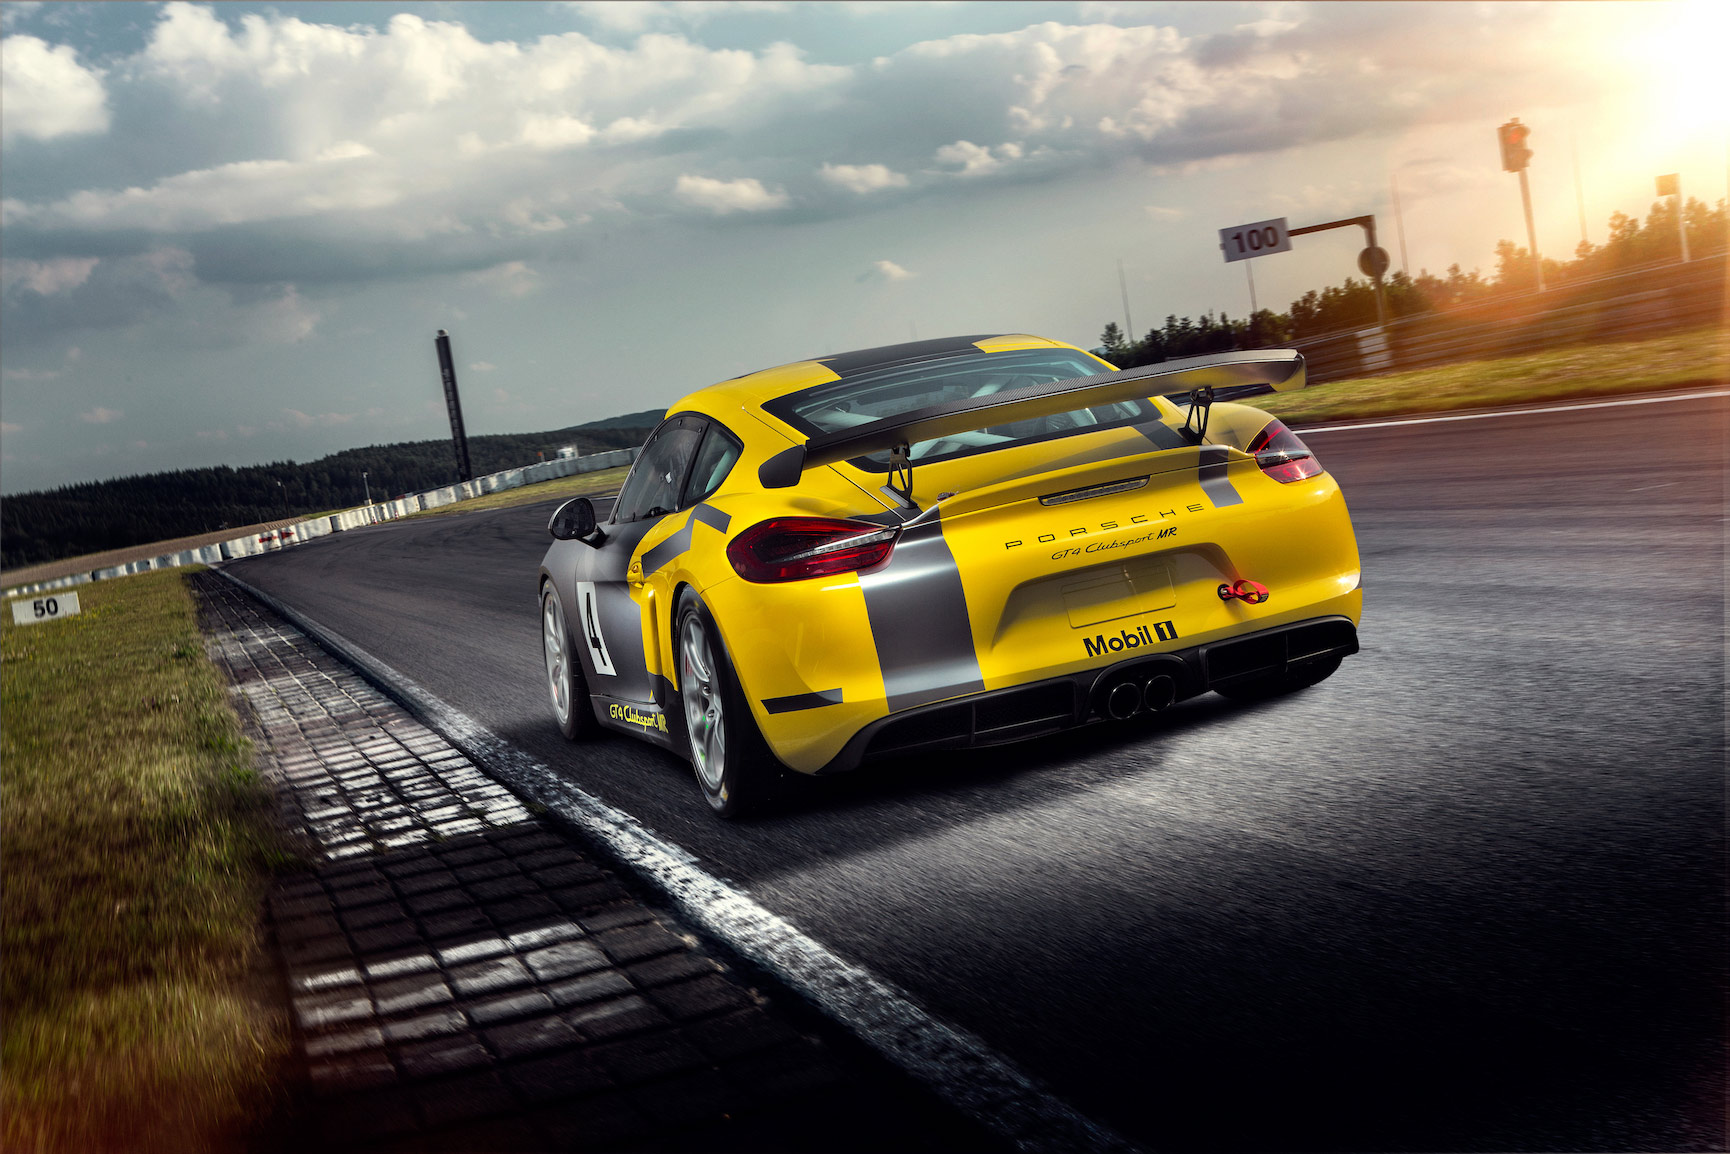 North American Customers Get Updated Porsche GT4 Clubsport MR Package